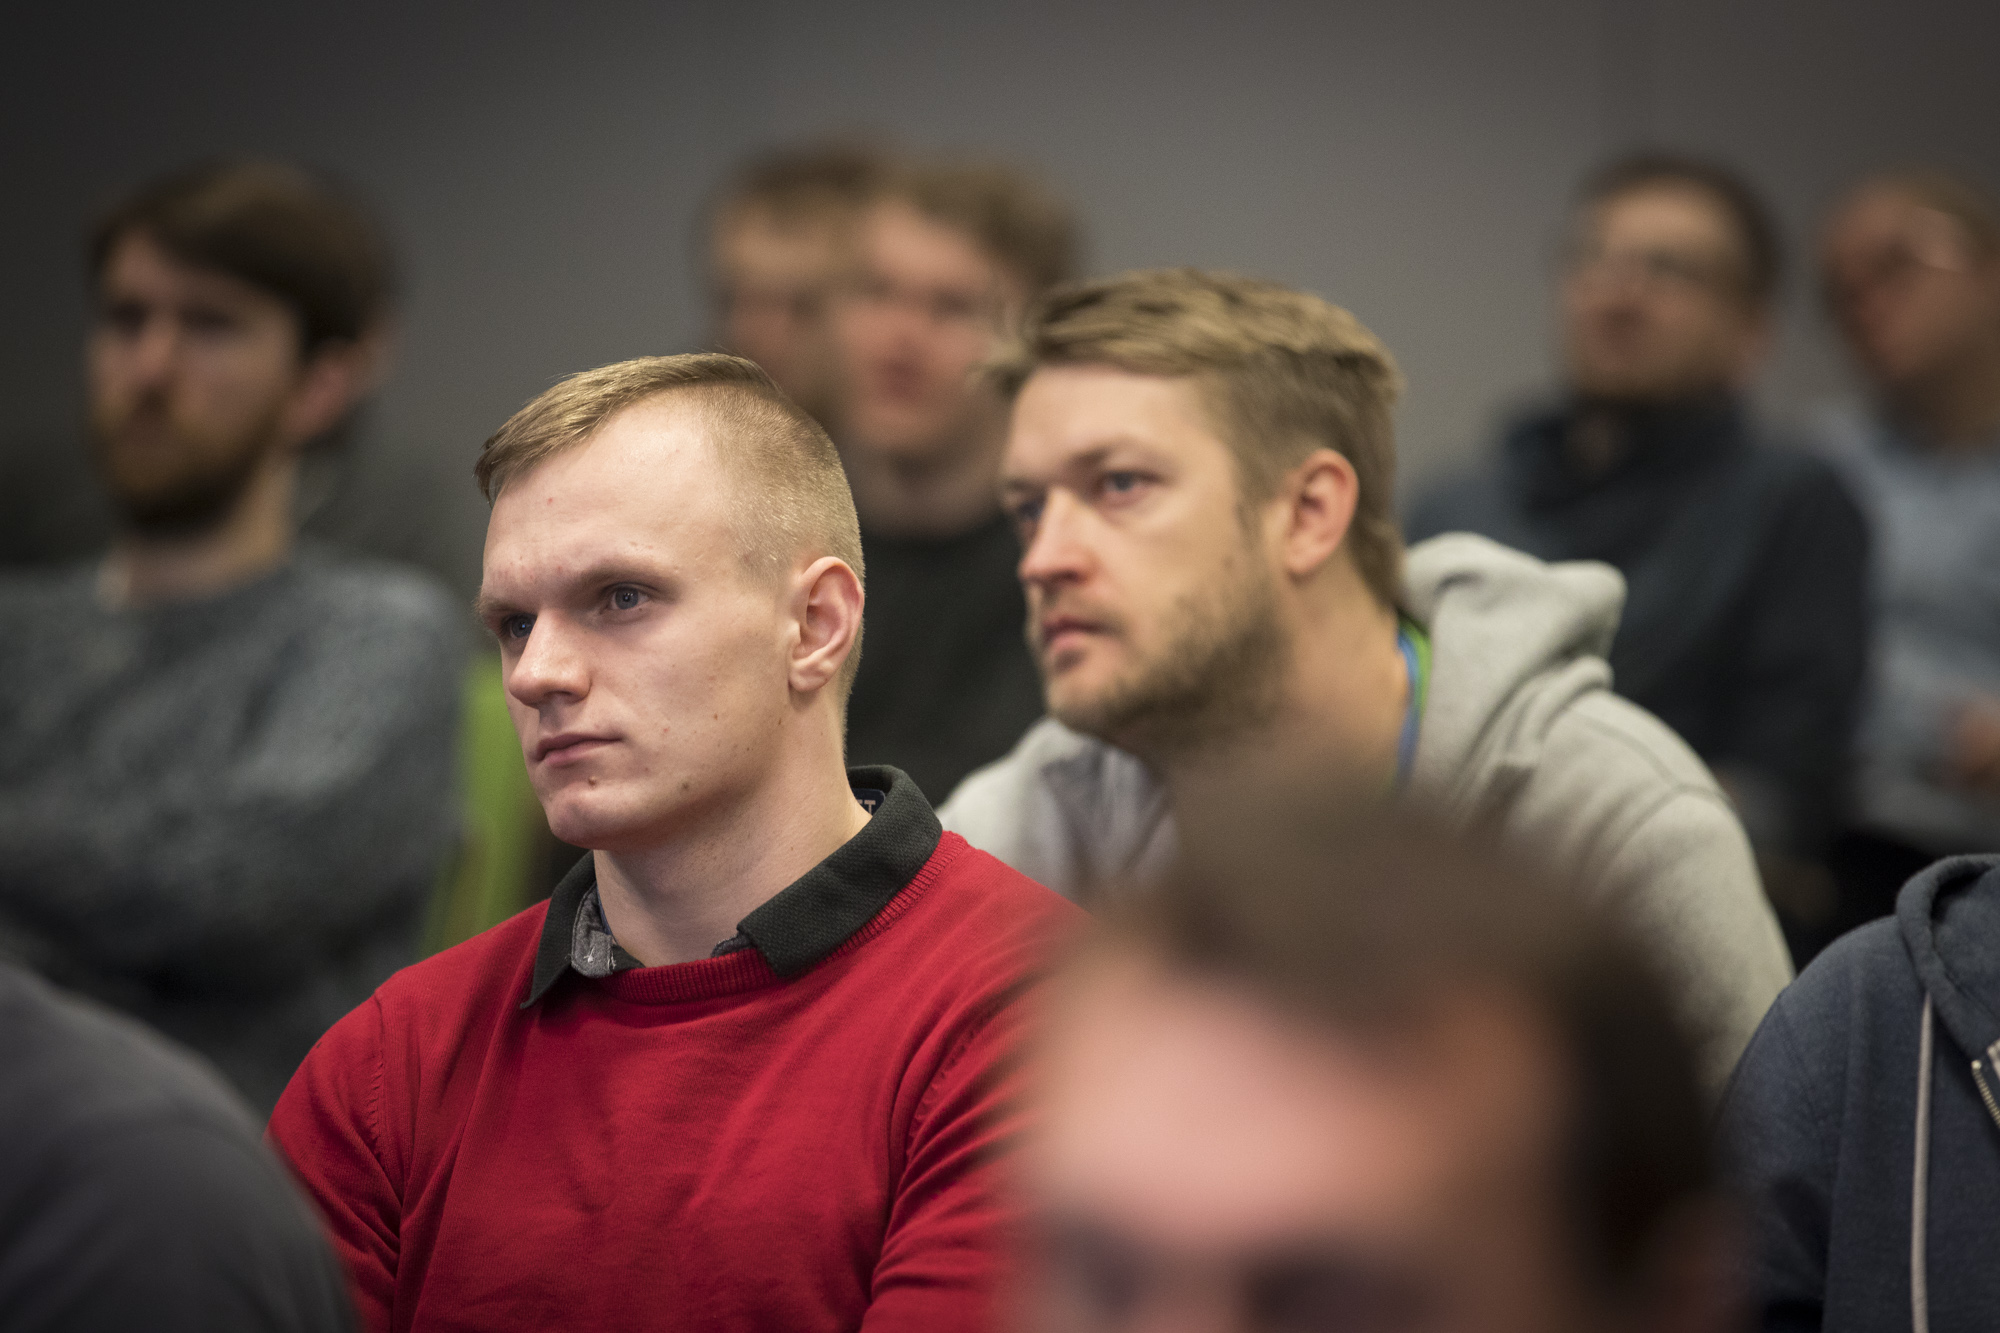 Android-meetup-gdansk-011216-20